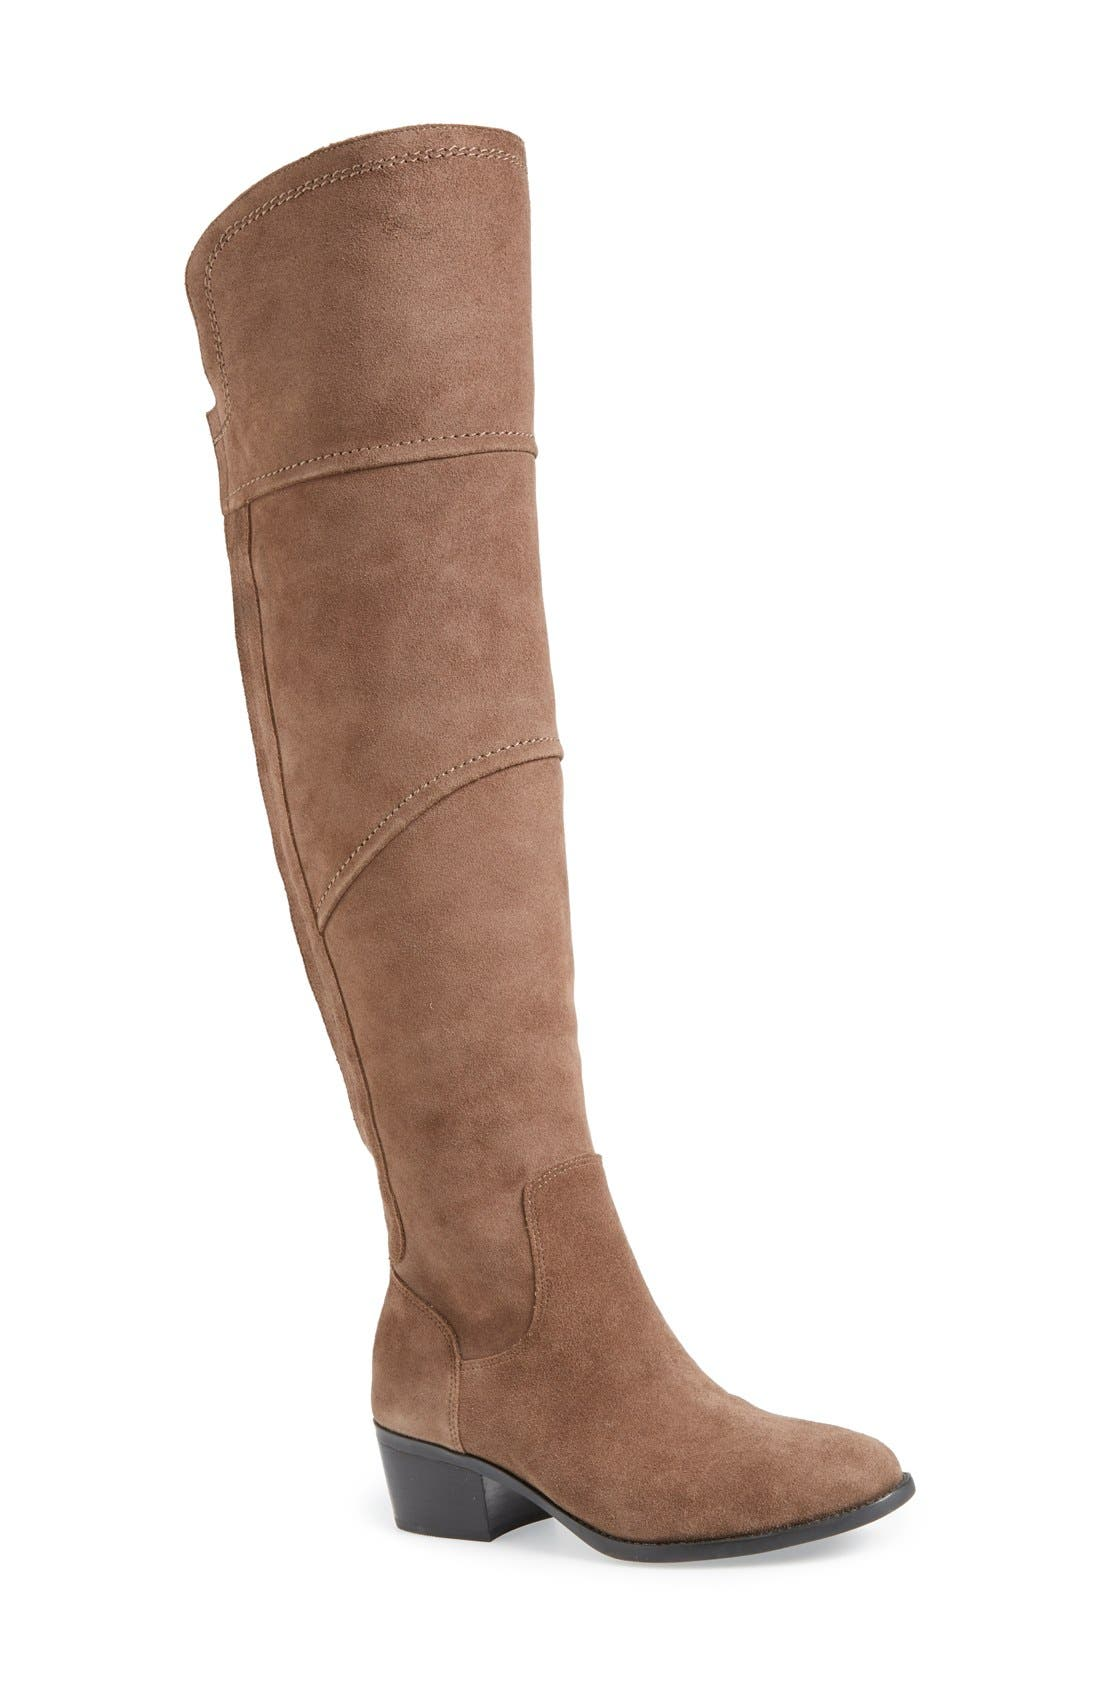 'Bernadine' Over the Knee Boot,                         Main,                         color, Midnght Taupe Suede